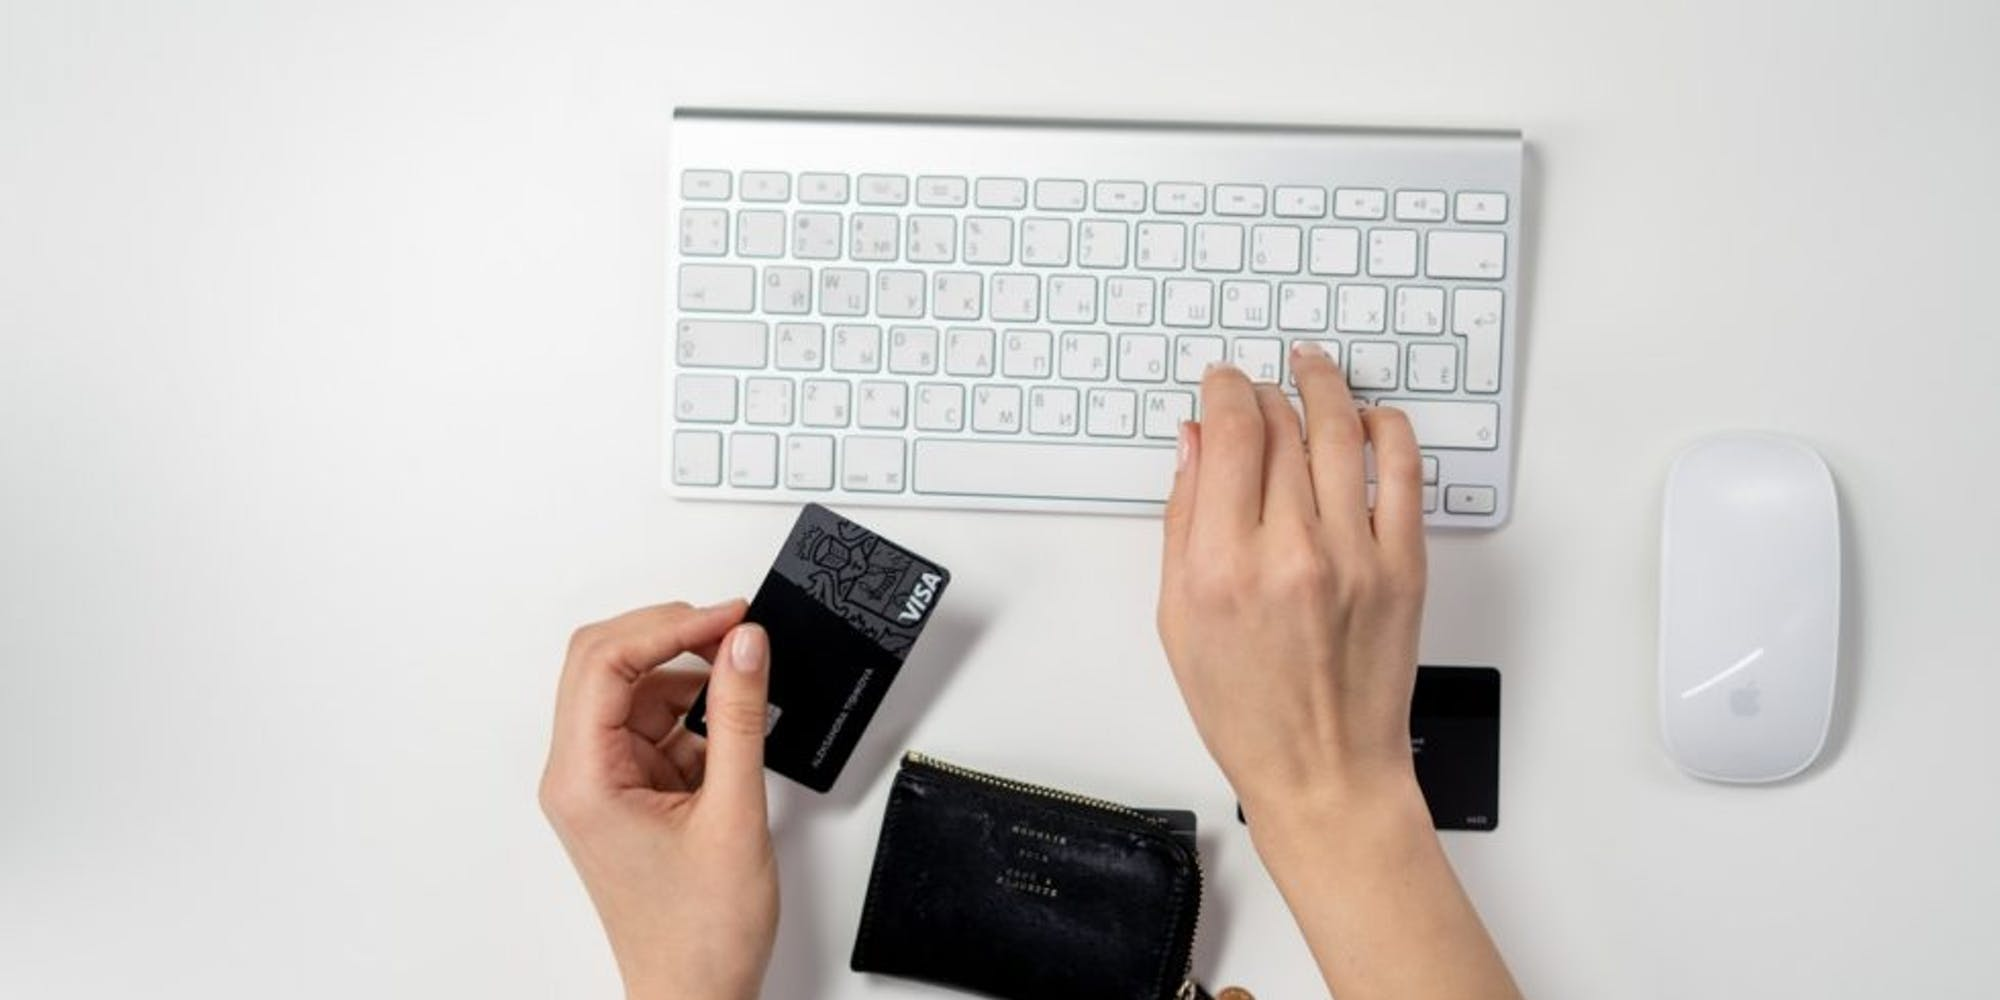 Lady keying her credit card details on an Apple keyborad